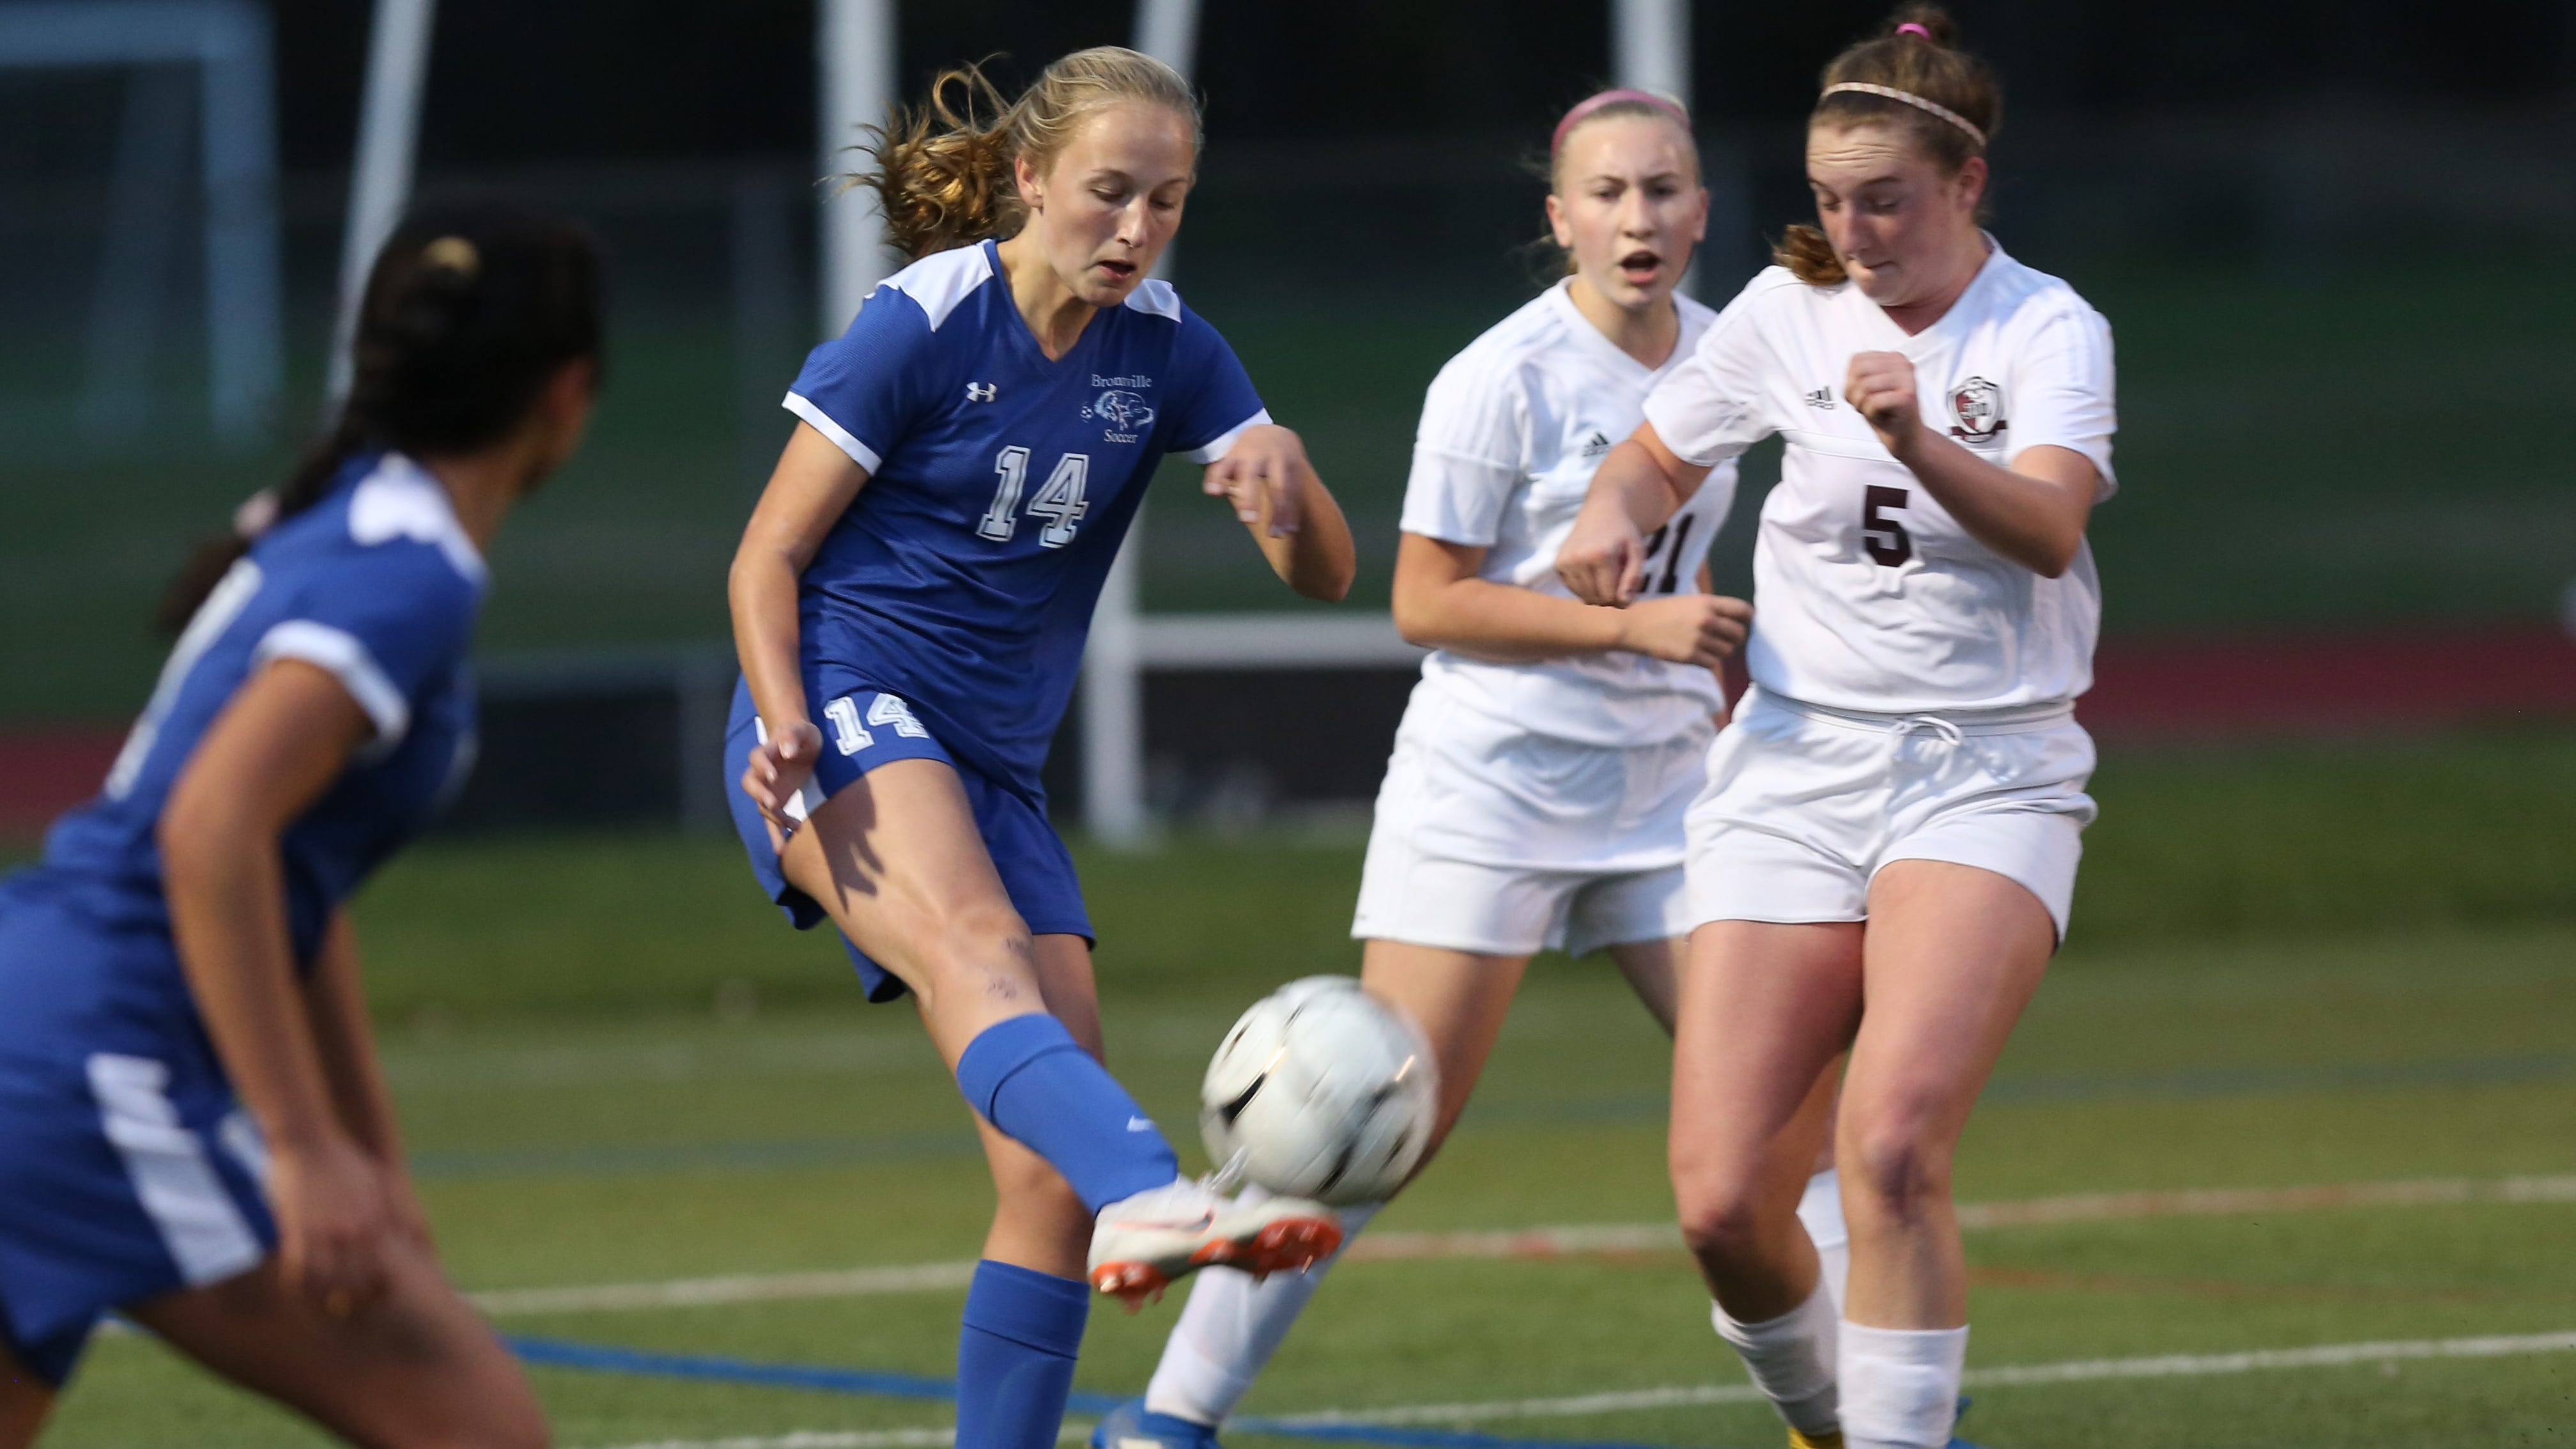 From left, Bronxville's Rachael Peacock (14) fires a shot against O'Neill during the Class B regional girls soccer semifinal at Arlington High School in Freedom Plains Oct. 31, 2018. Bronxville won the game 2-0.